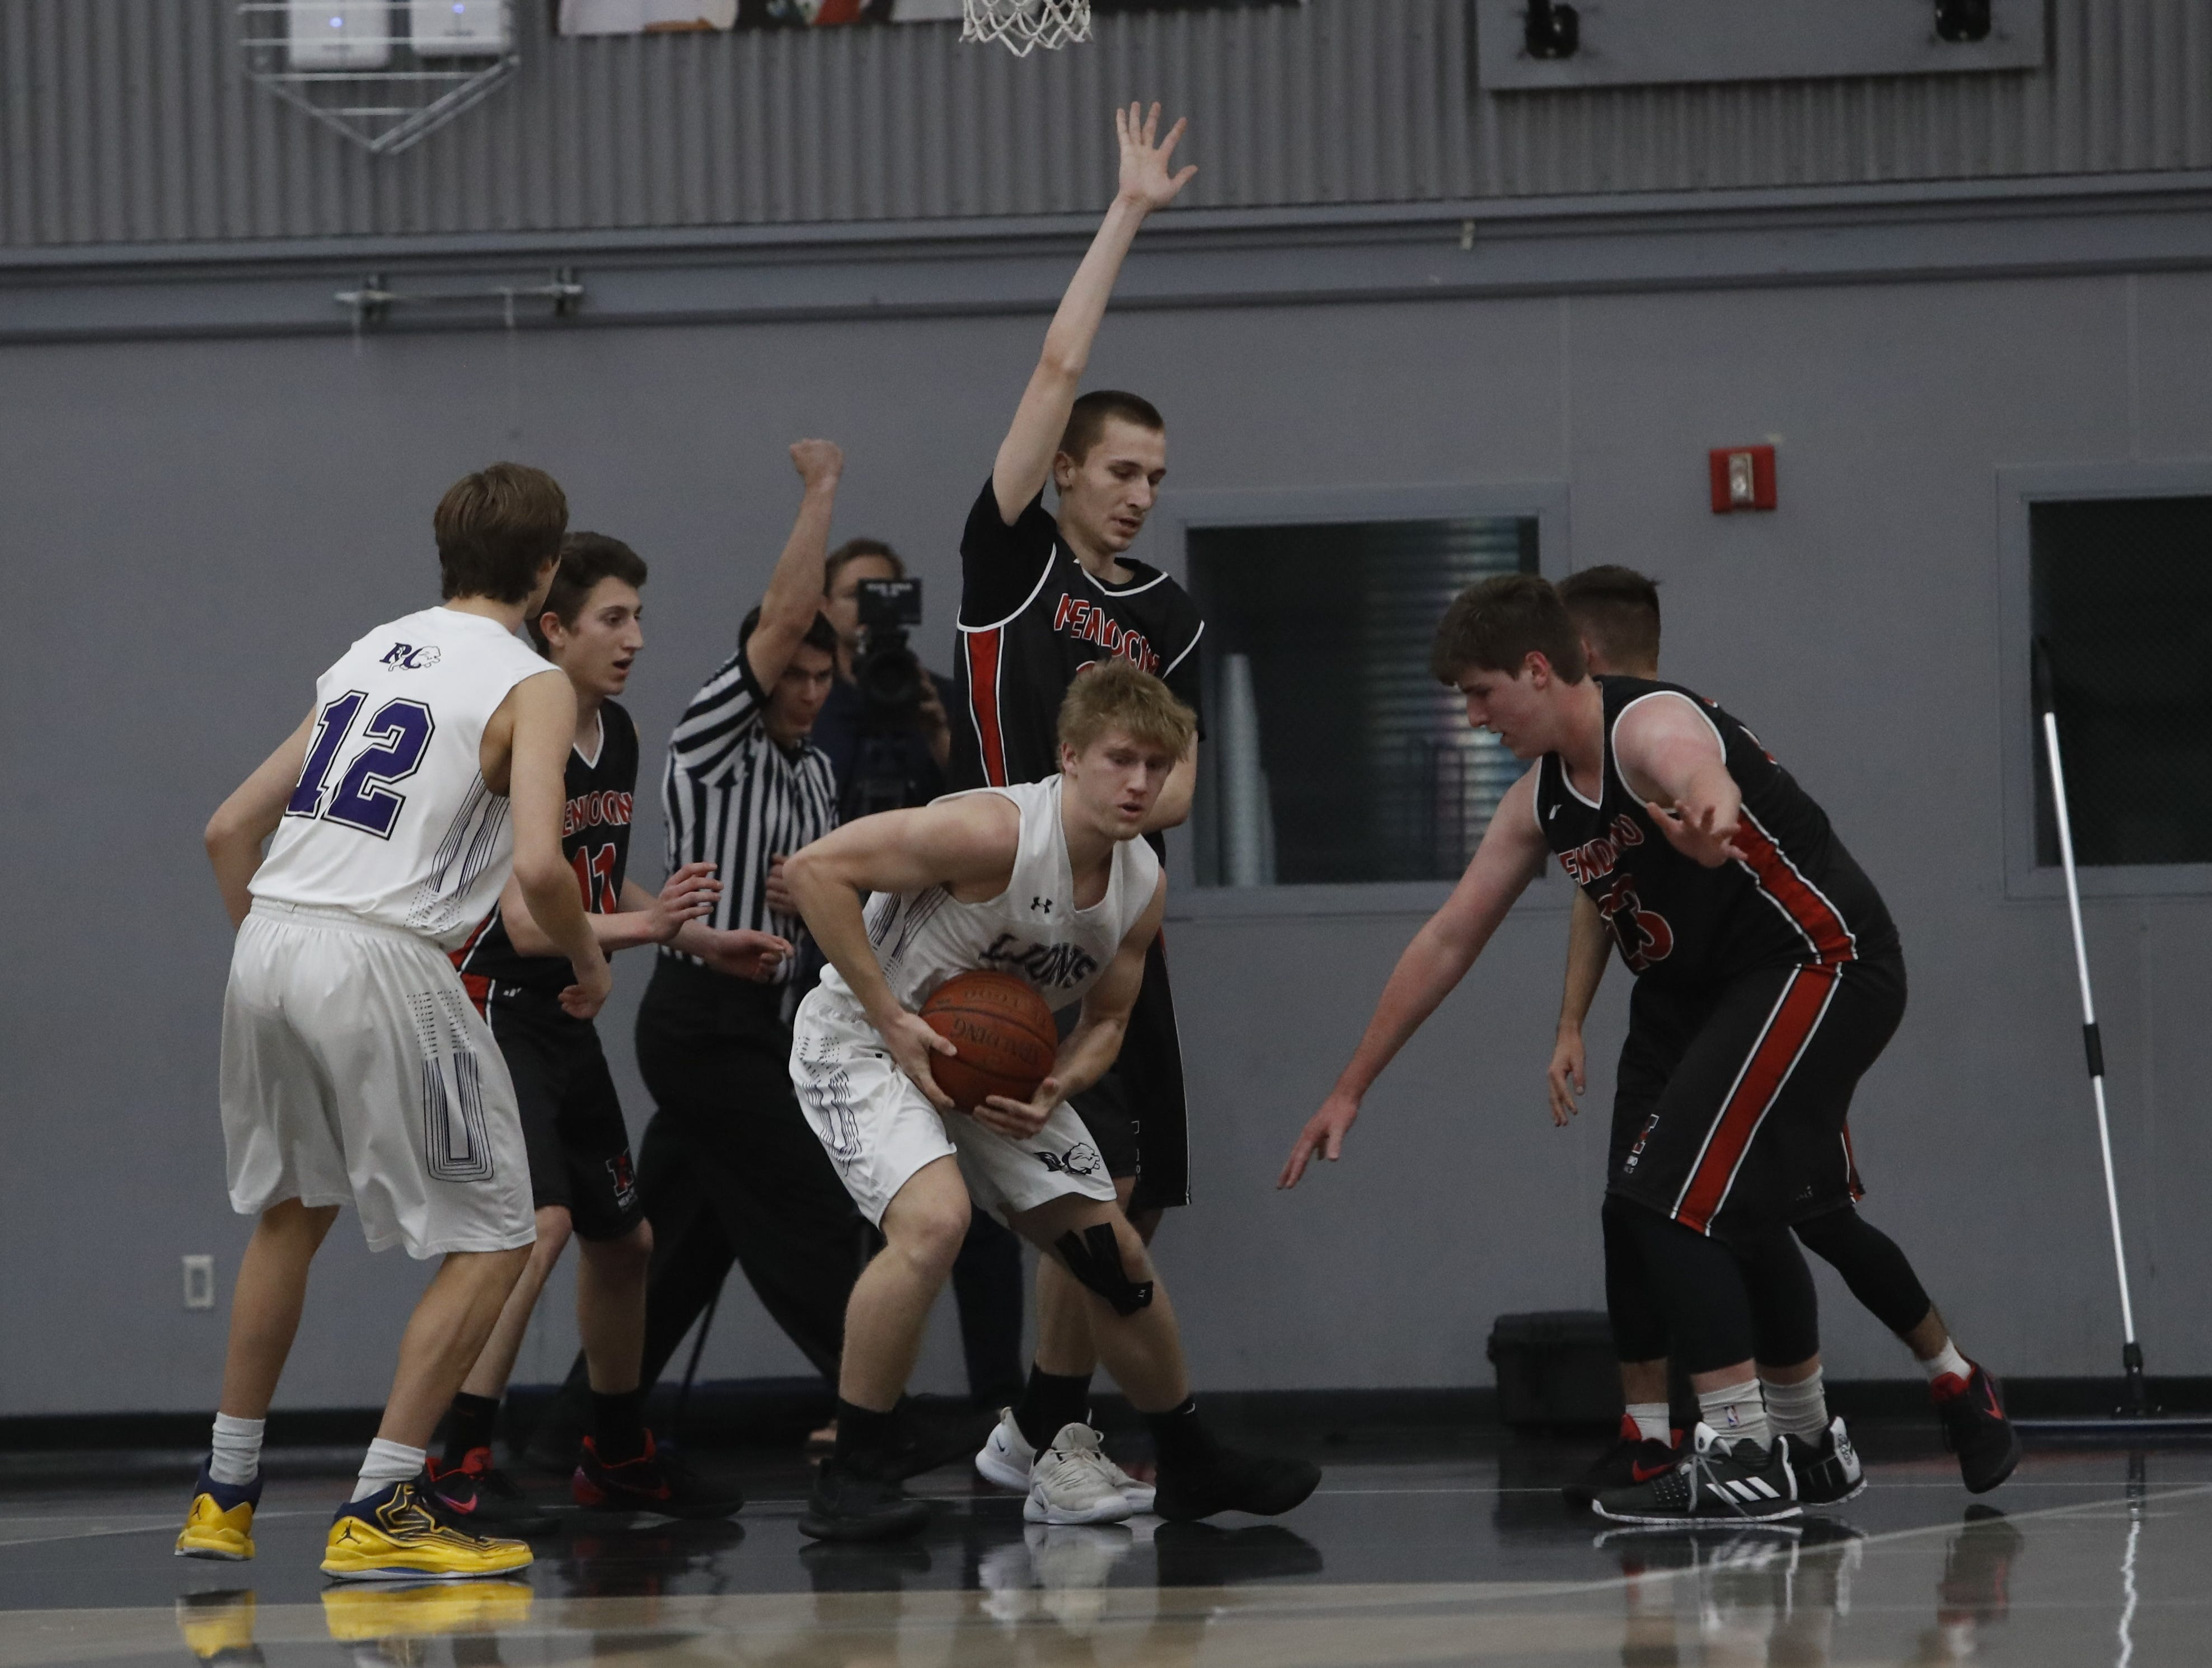 The Redding Christian Lions beat Mendocino, 60-48, at Foothill High to advance into the semifinals of the NorCal Division VI bracket on Thursday, Feb. 28.